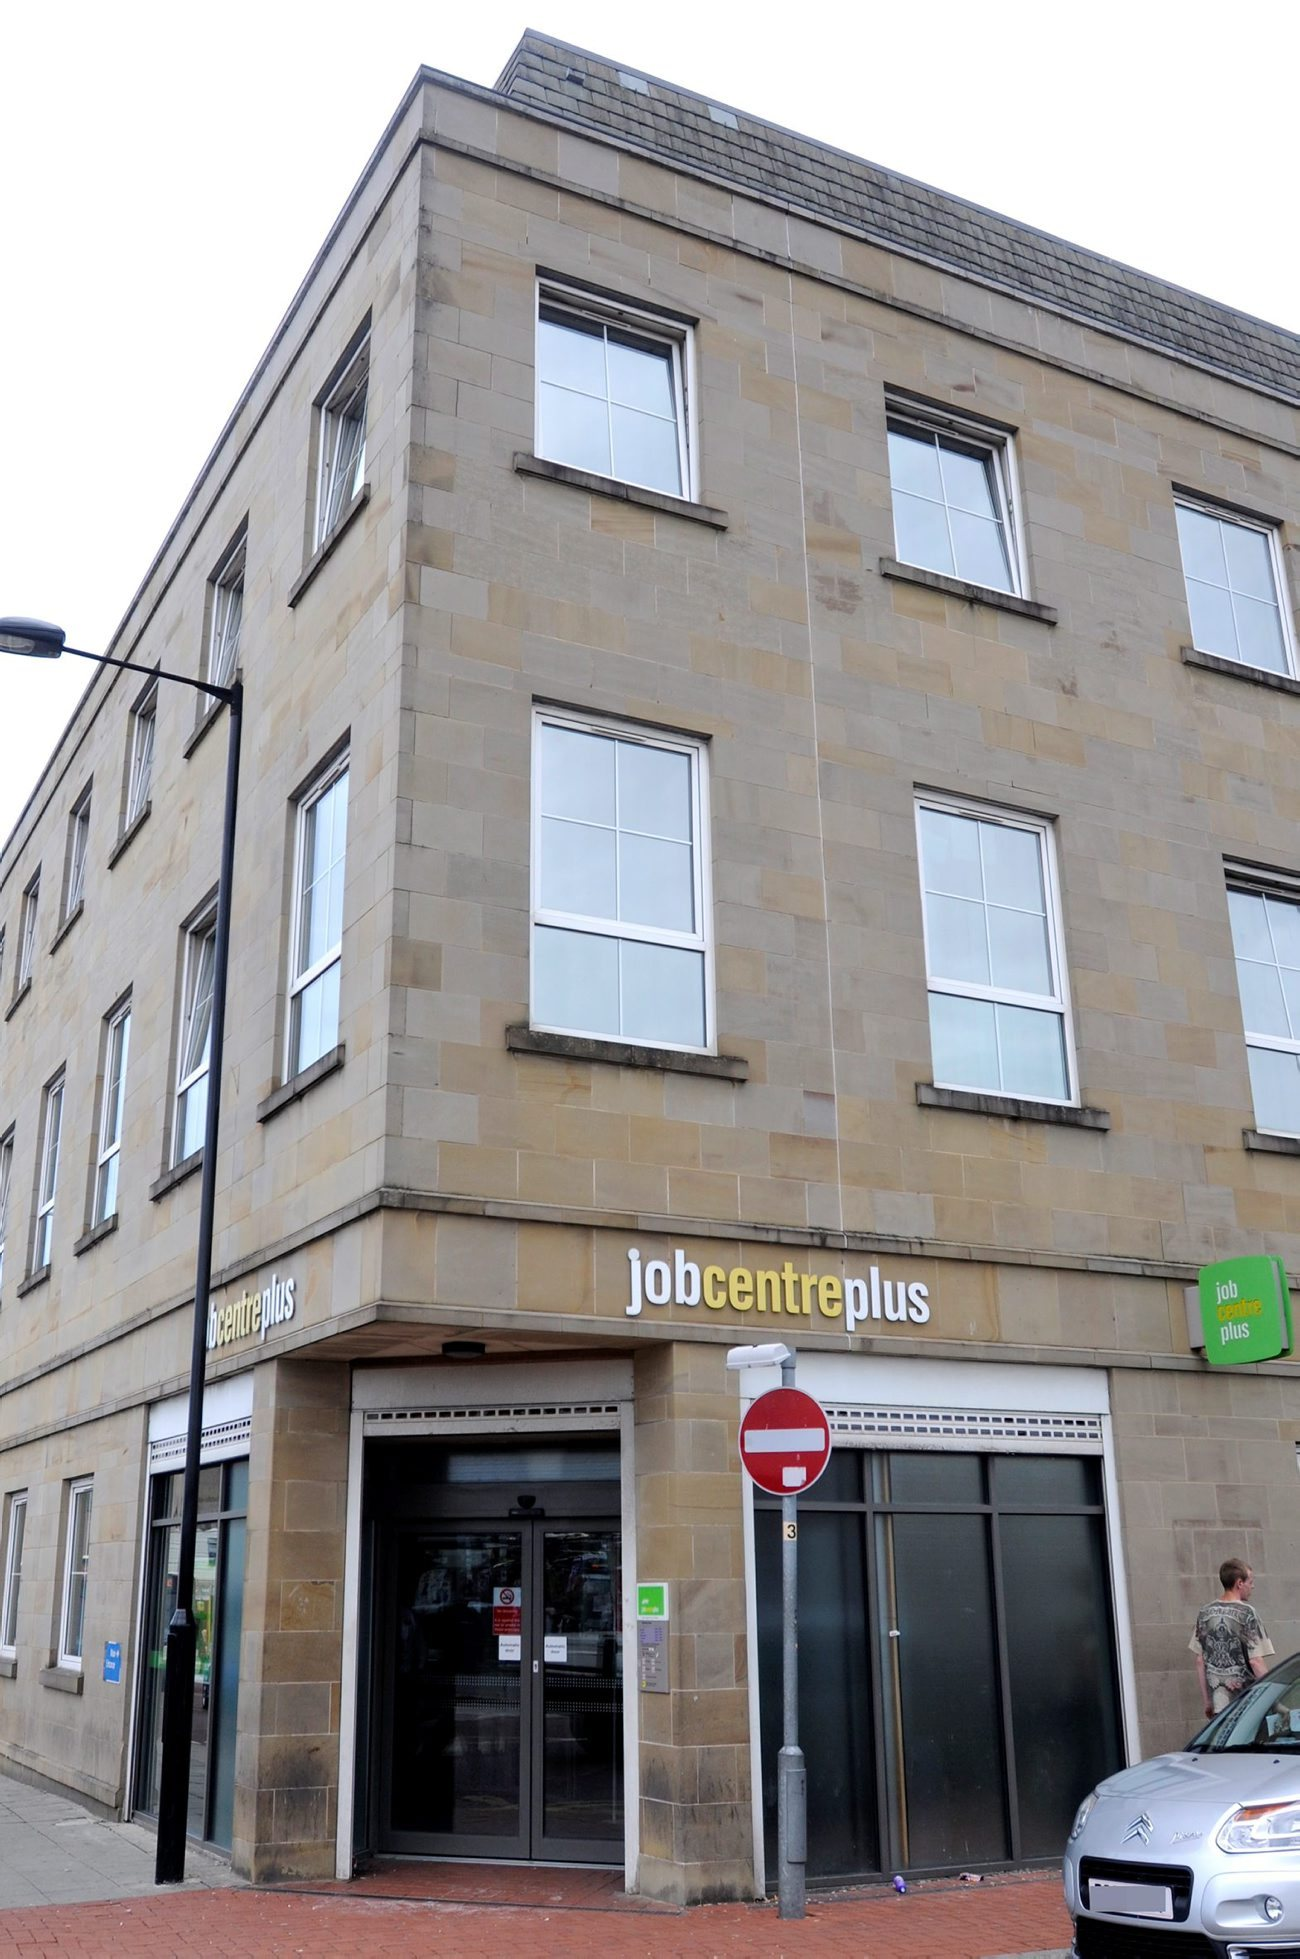 The Jobcentre plus office at Elizabeth House in Black Horse Street, Bolton